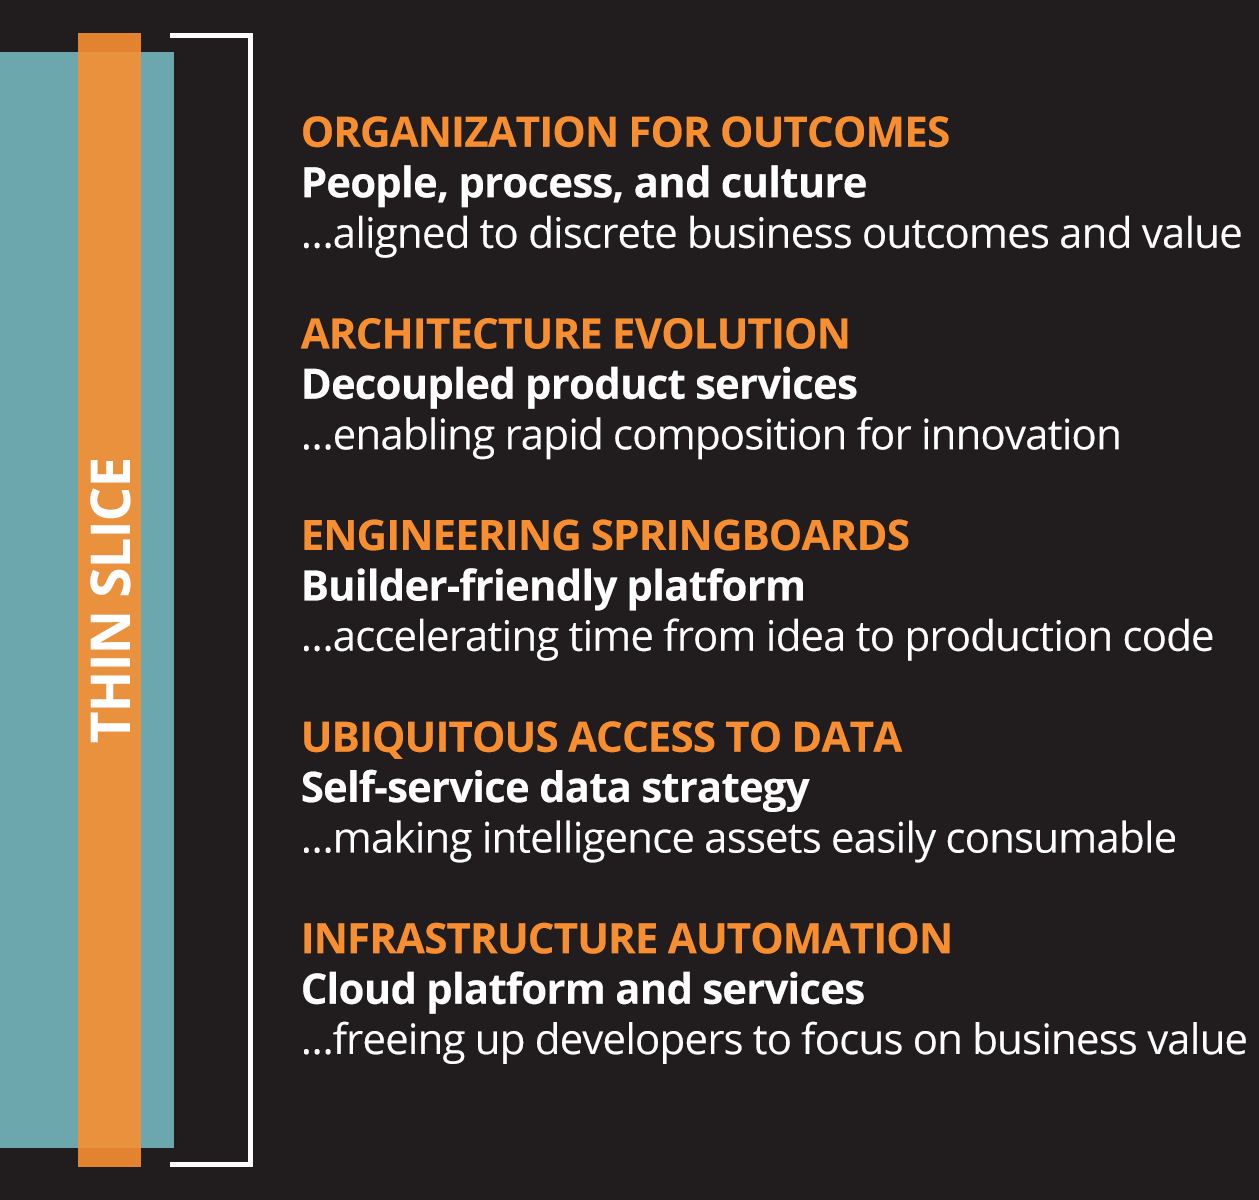 1. organization for outcomes, 2. architecture evolution, 3. engineering springboards, 4. ubiquitous access to data, 5. infrastructure automation